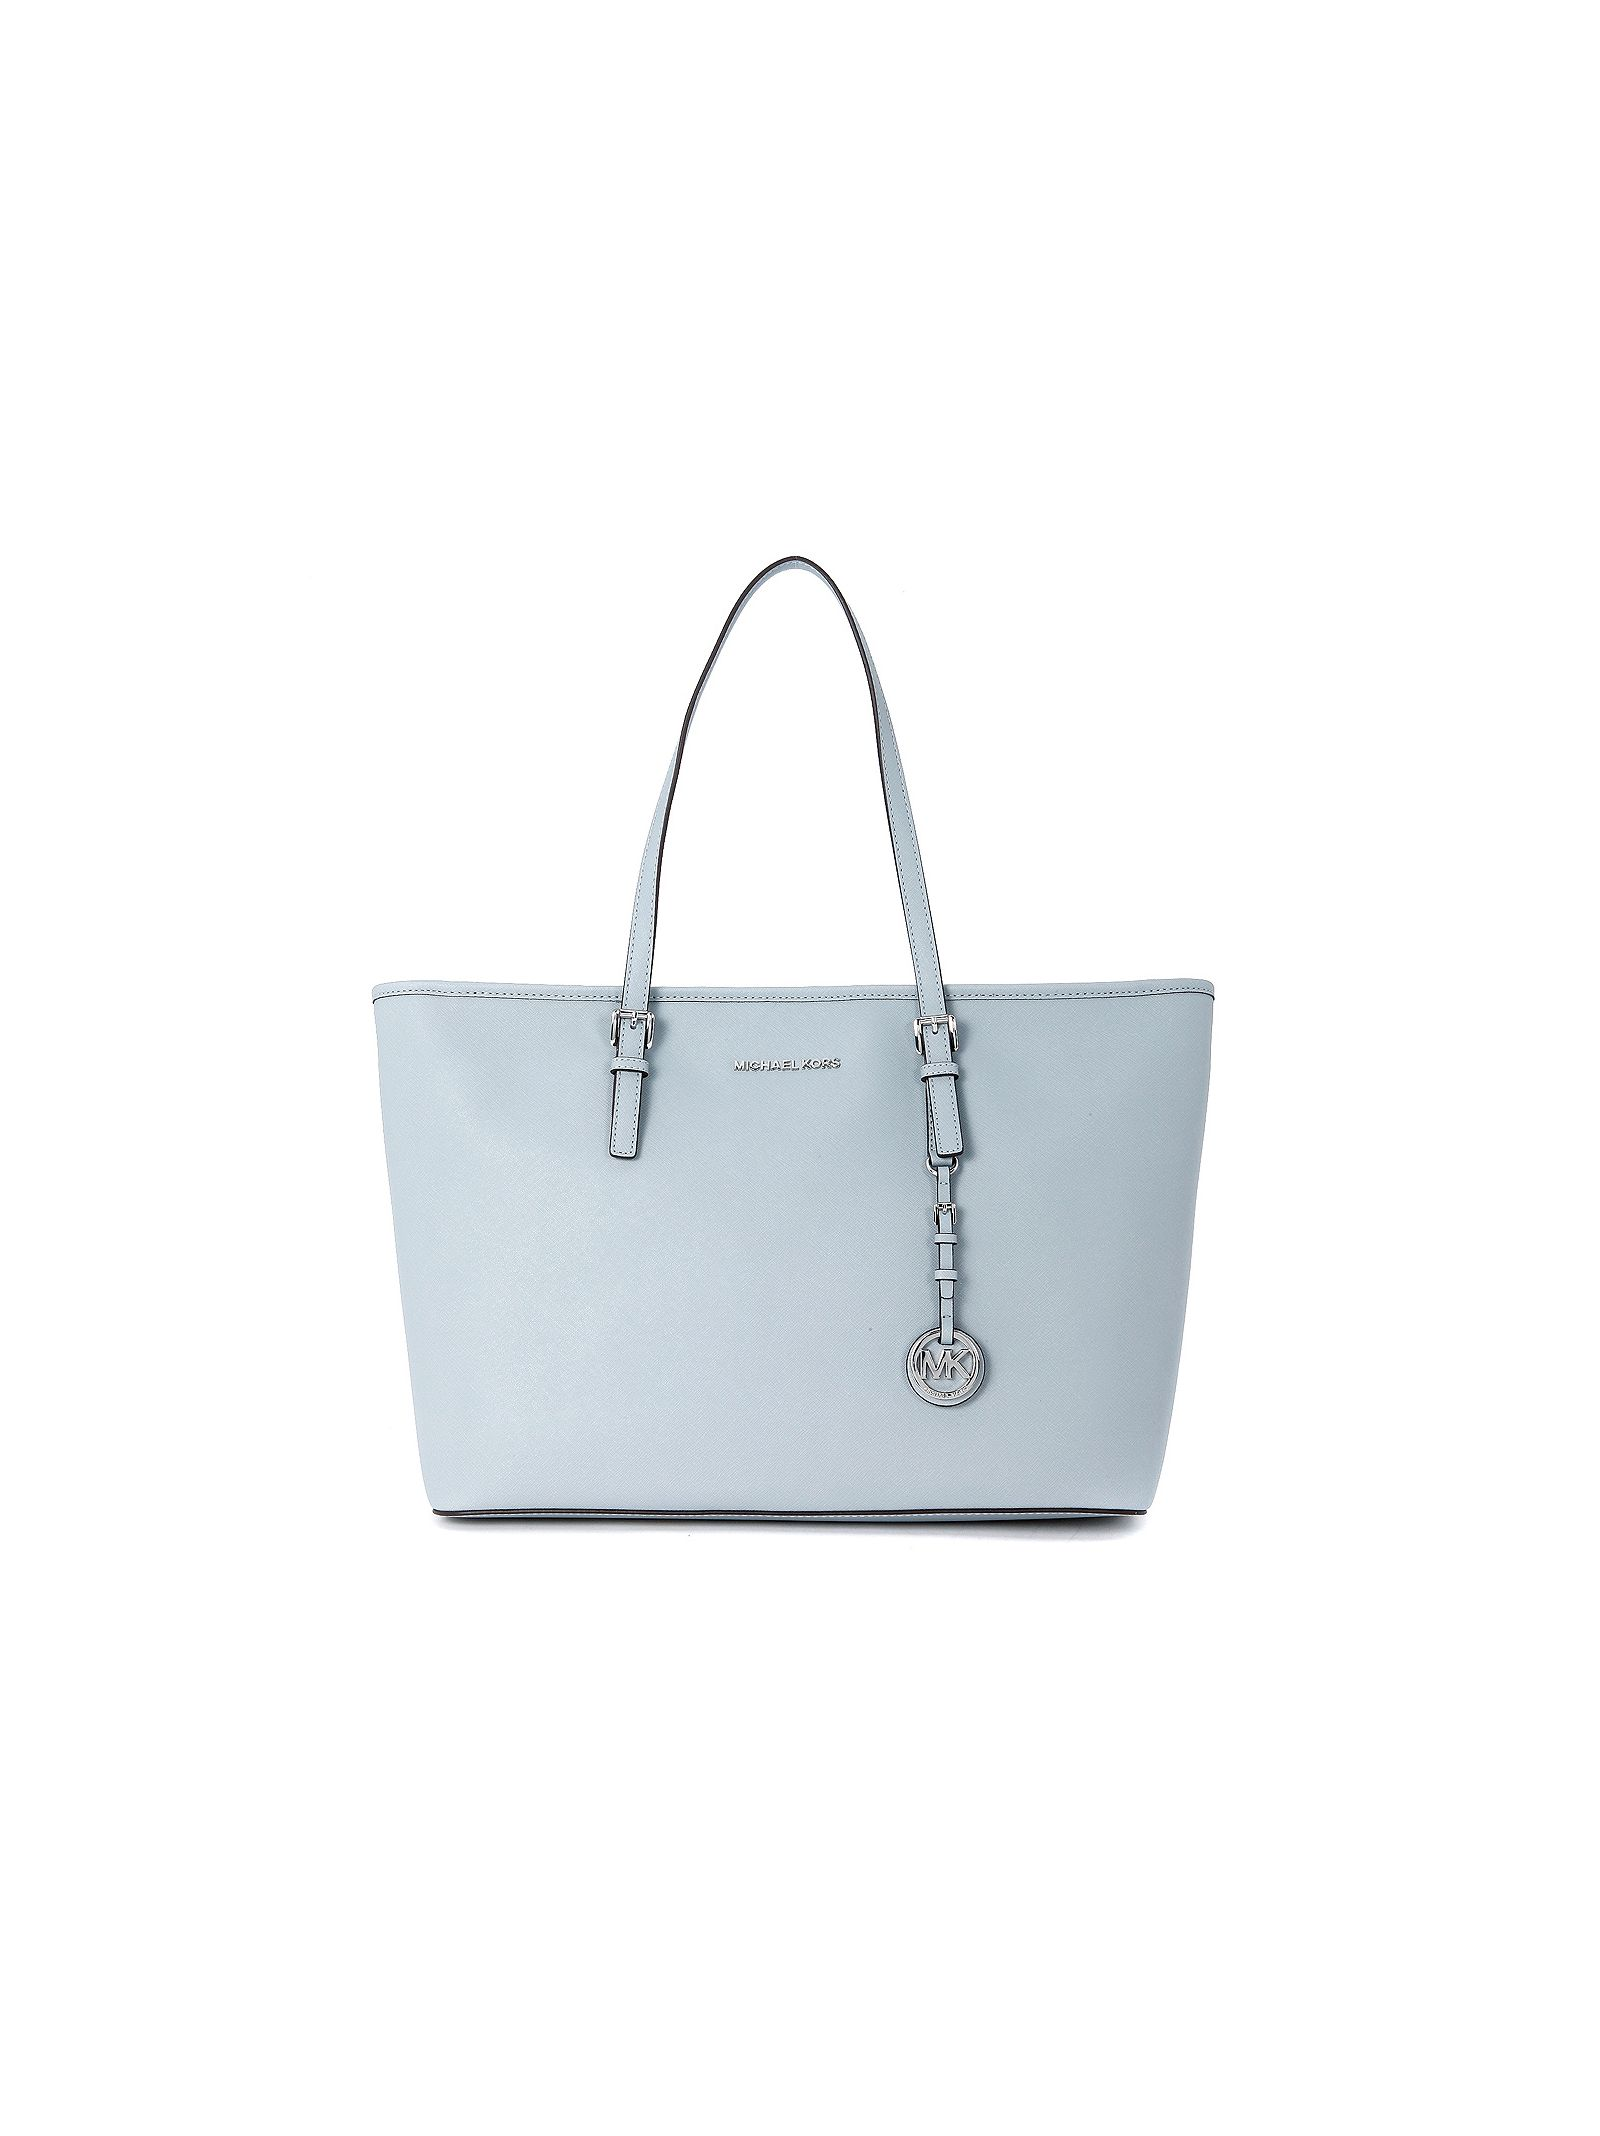 michael kors female  michael kors jet set travel tz robinsegg light blue tote bag